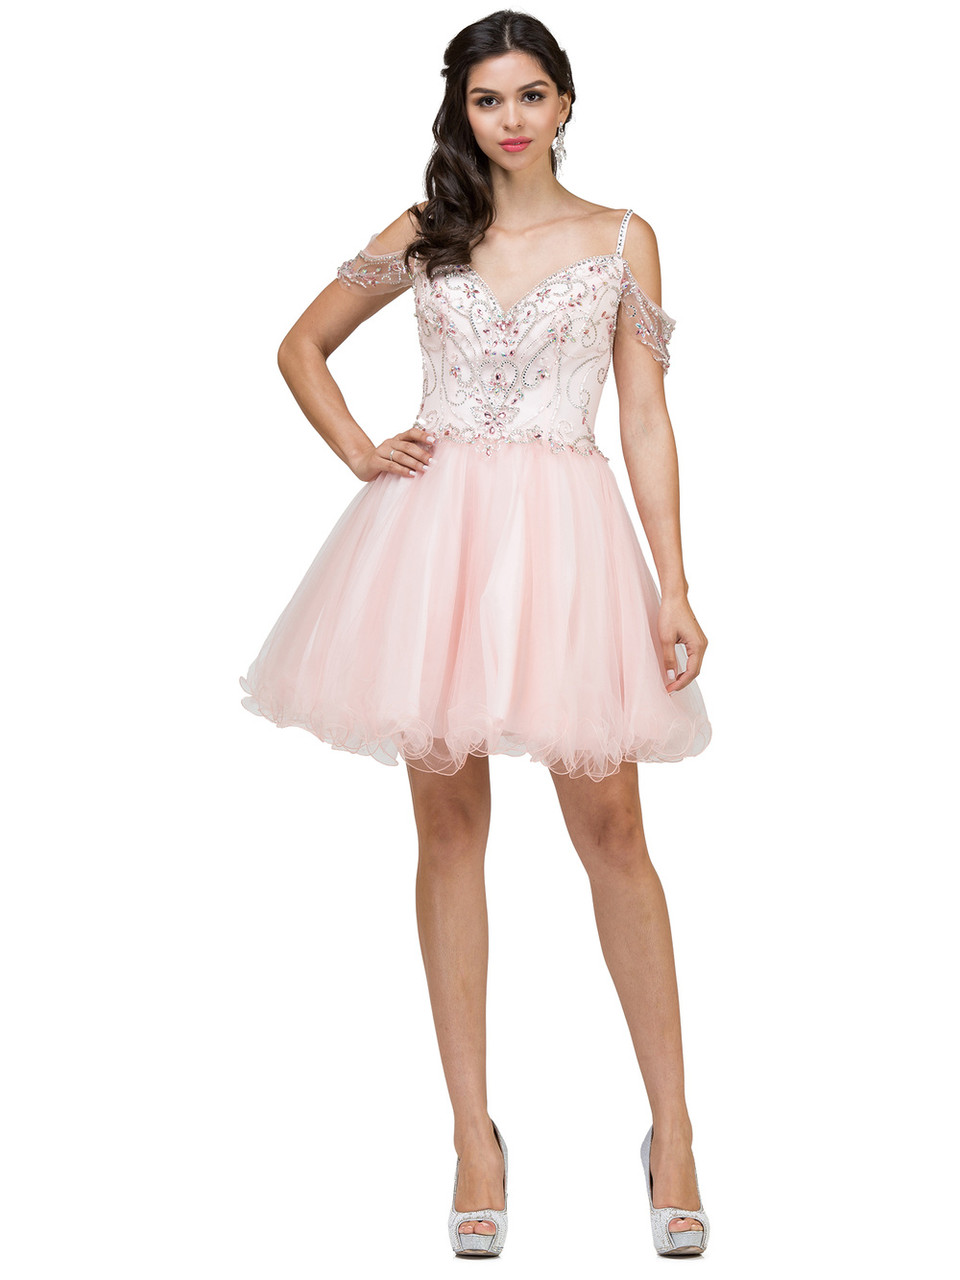 Dancing Queen 2023 Jeweled Off-shoulder Fit and Flare Dress